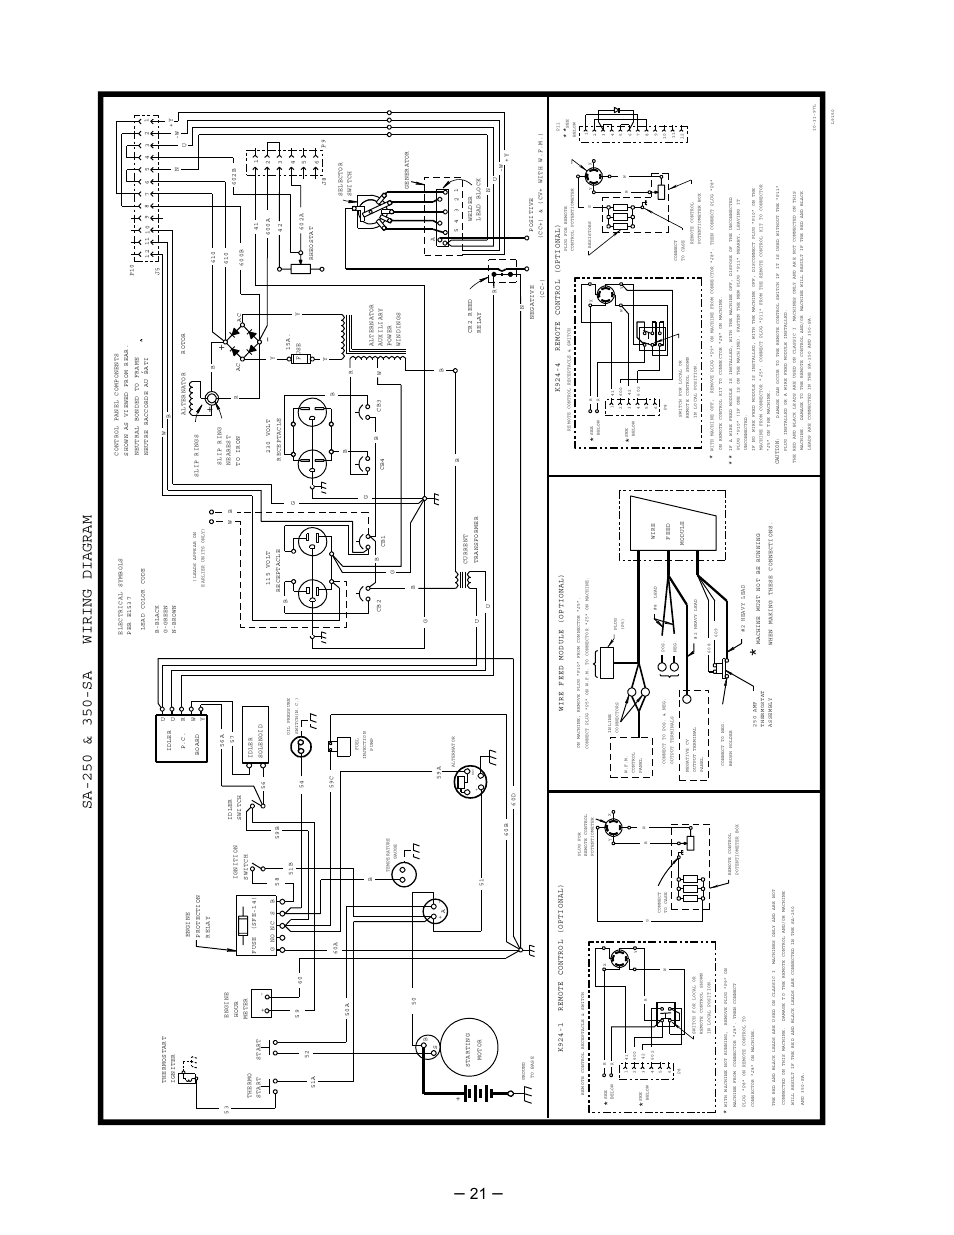 lincoln electric perkins sa 250 page22 lincoln electric perkins sa 250 user manual page 22 28 lincoln sa 250 welder wiring diagram at bakdesigns.co